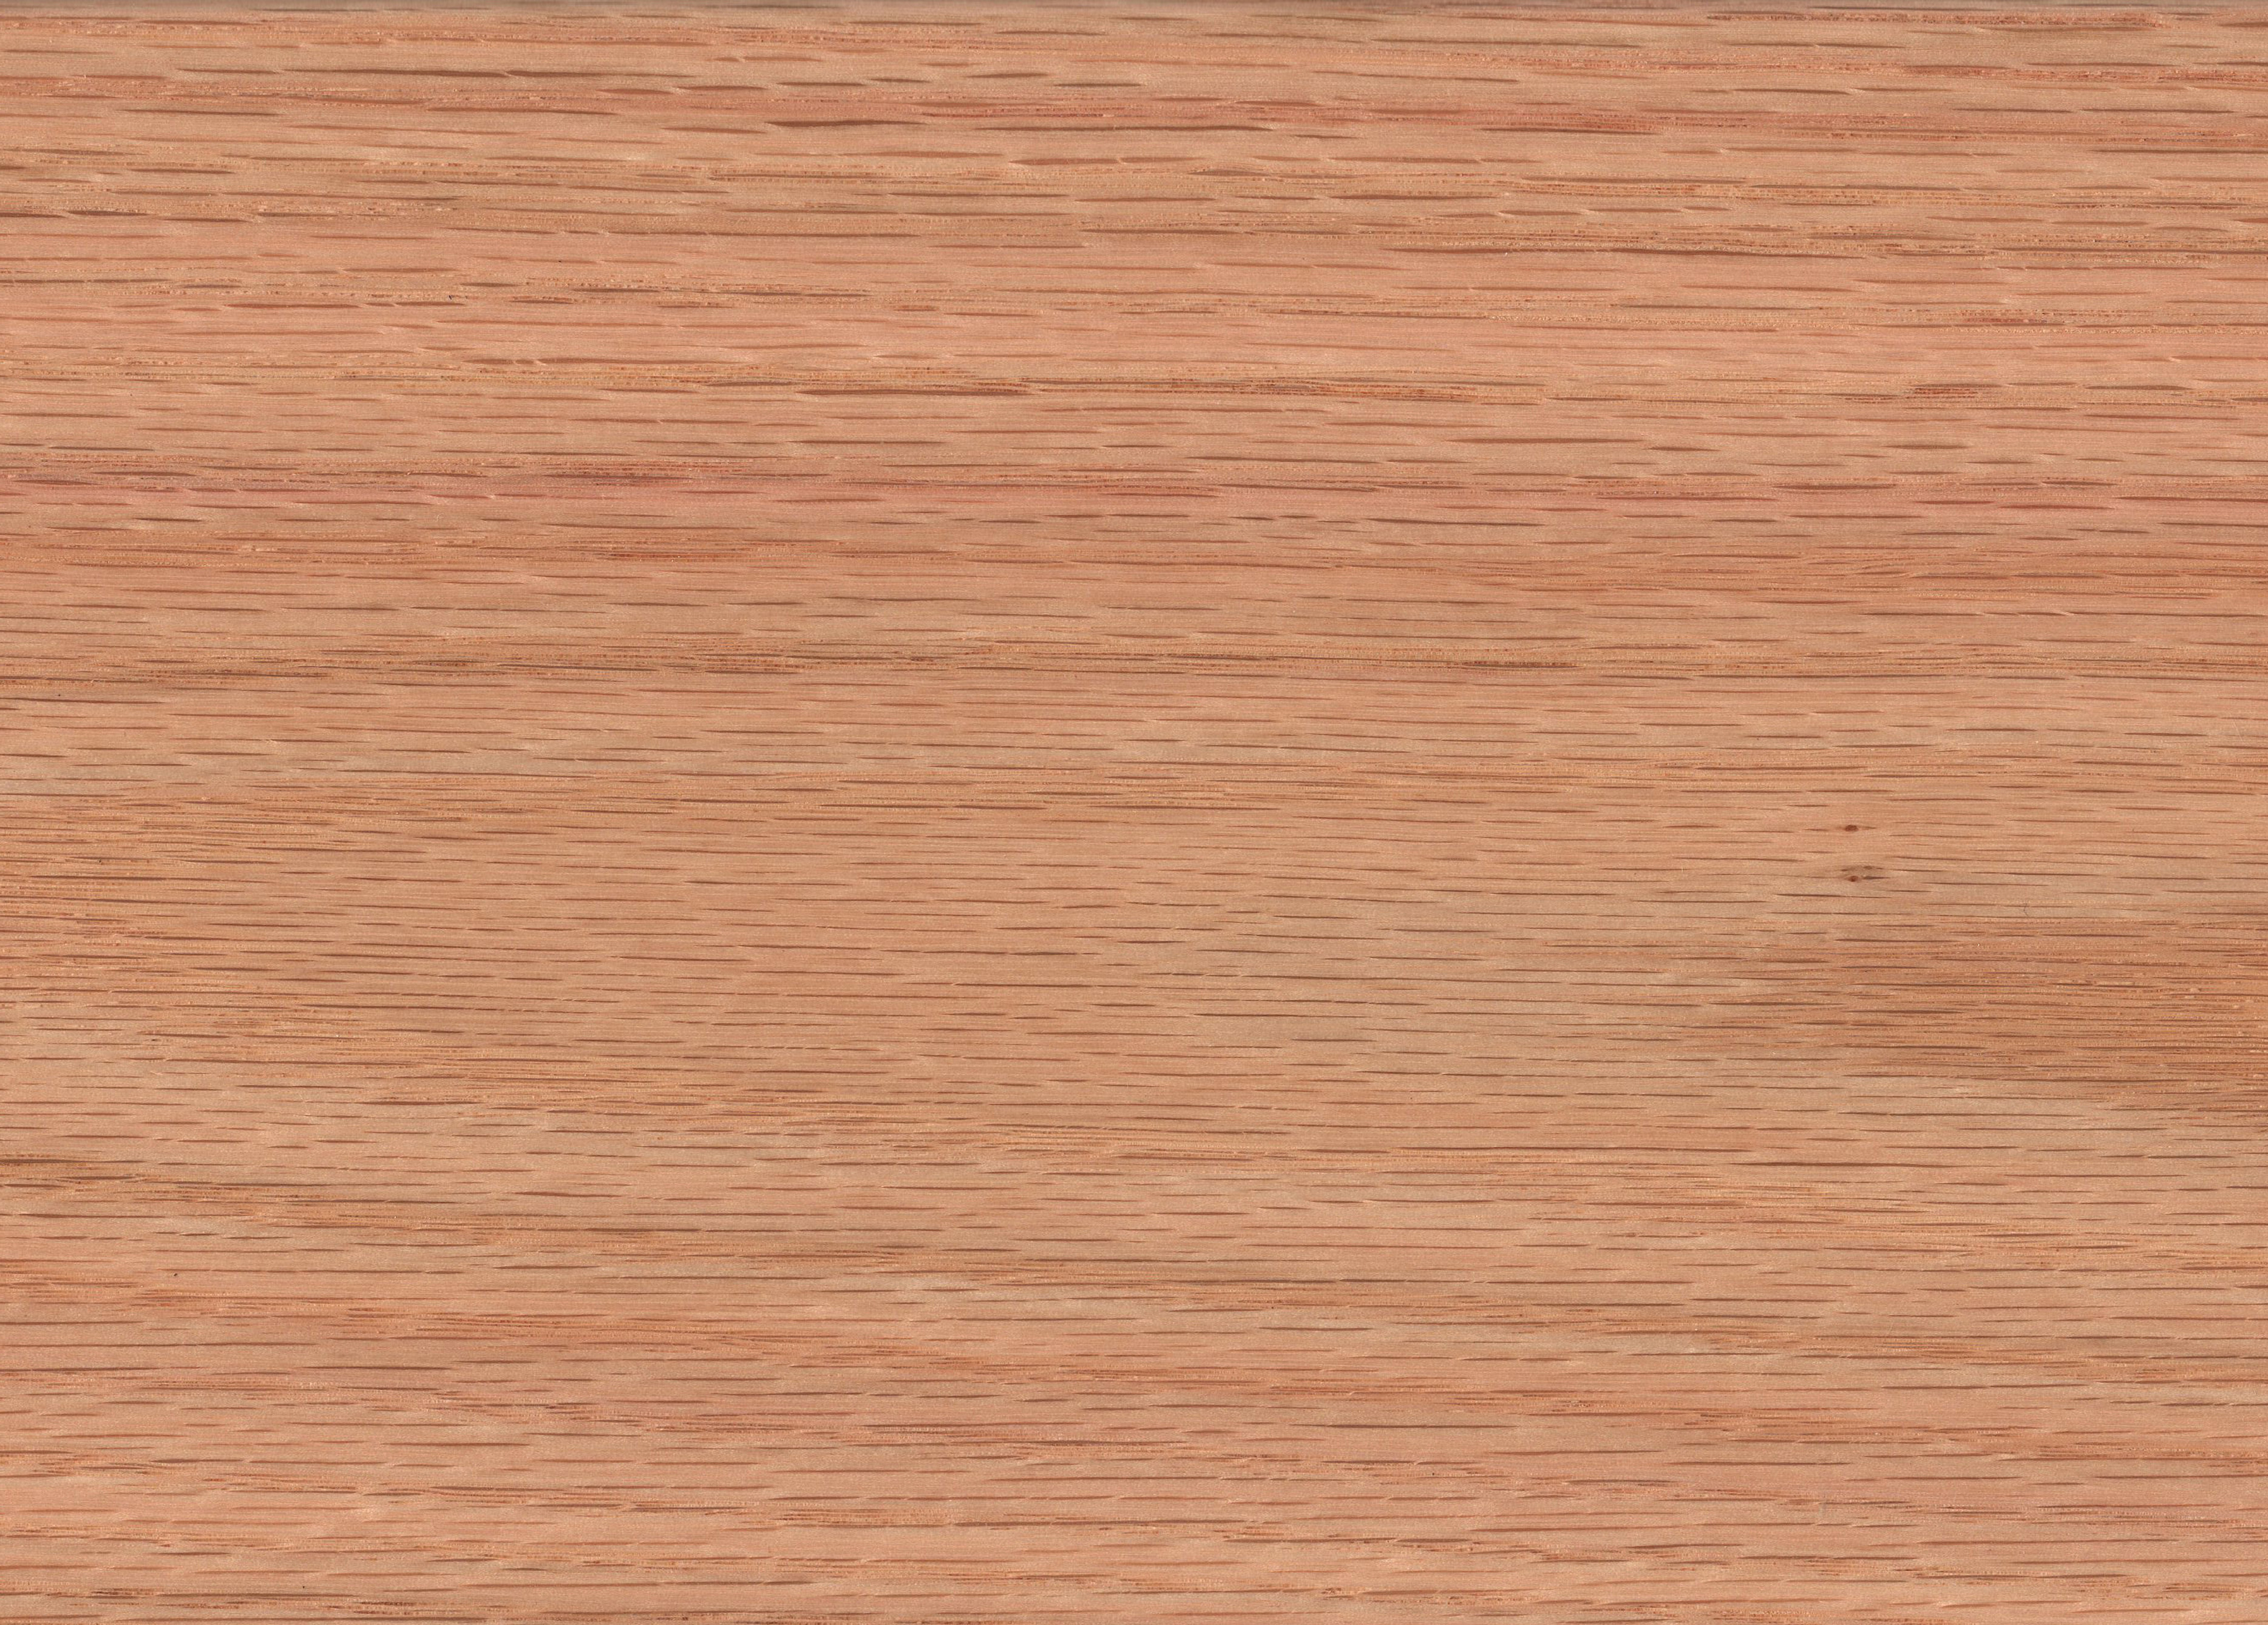 Stains on Red Oak: Clear